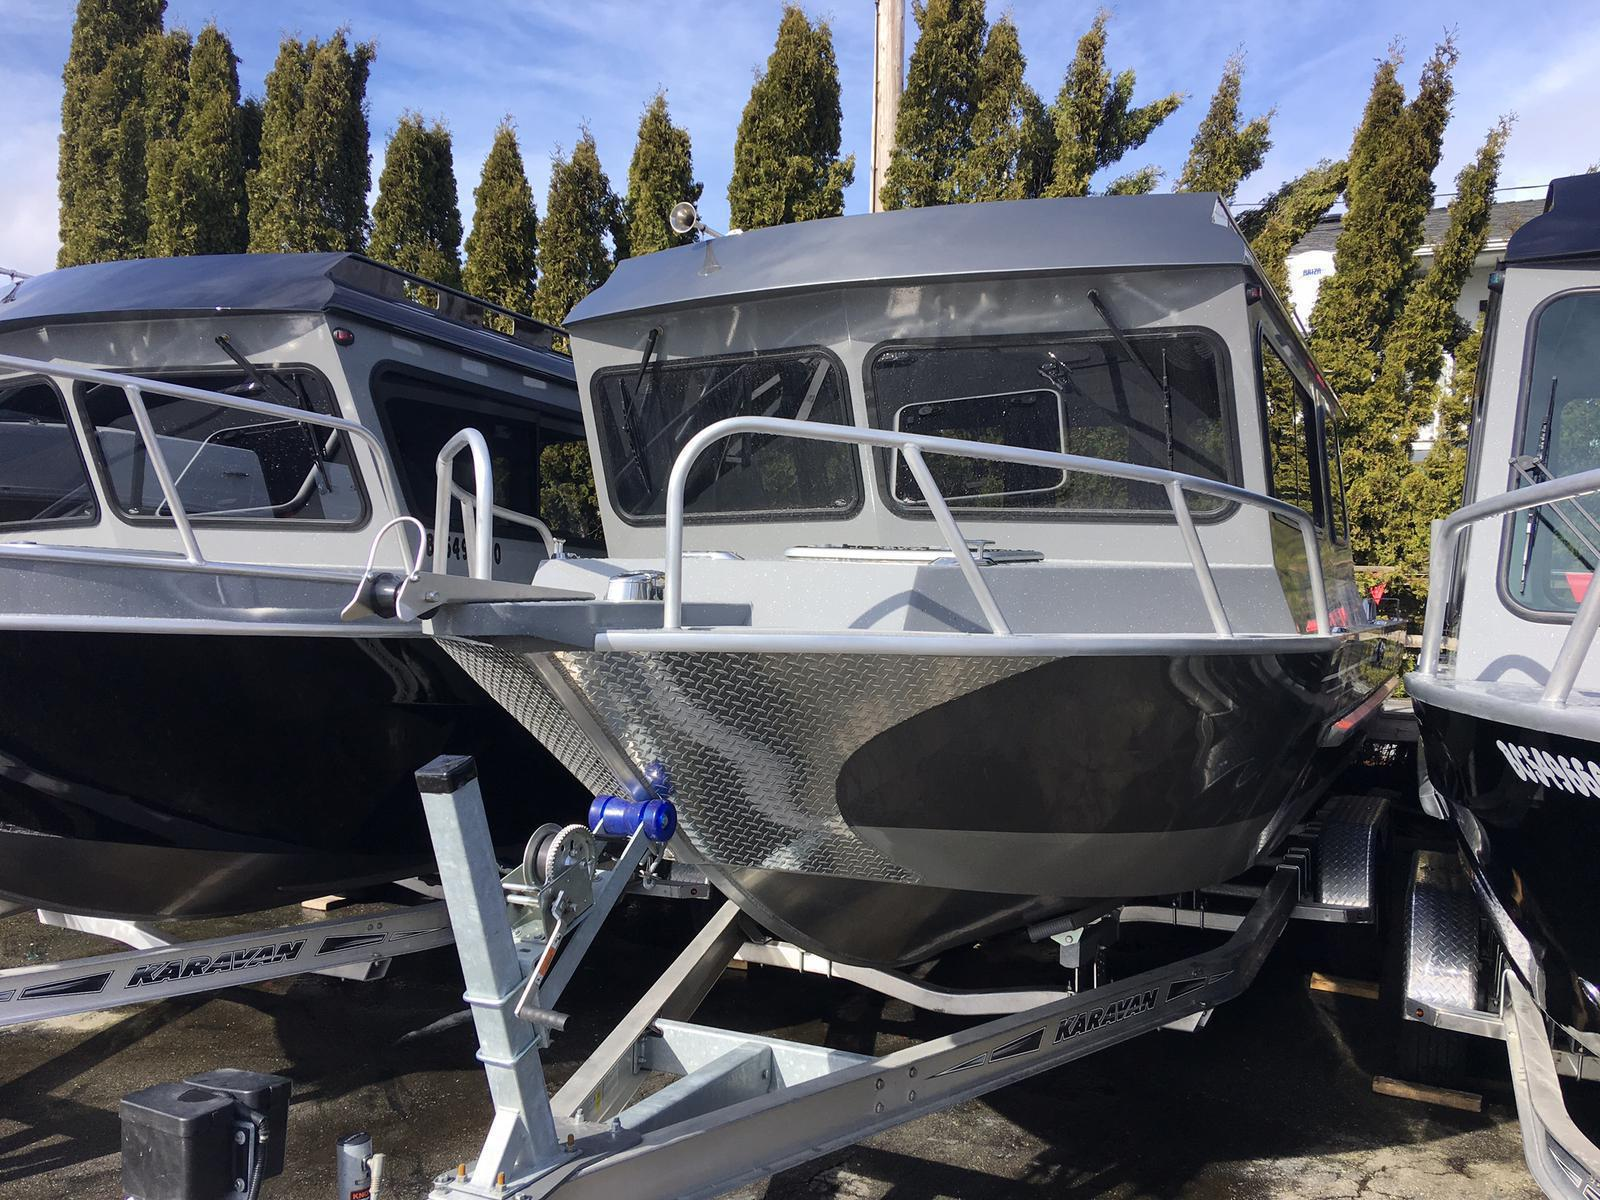 Aluminum Boats For Sale Bc >> 2017 Rh Aluminum Boats 22 Sea Hawk Pro Cuddy